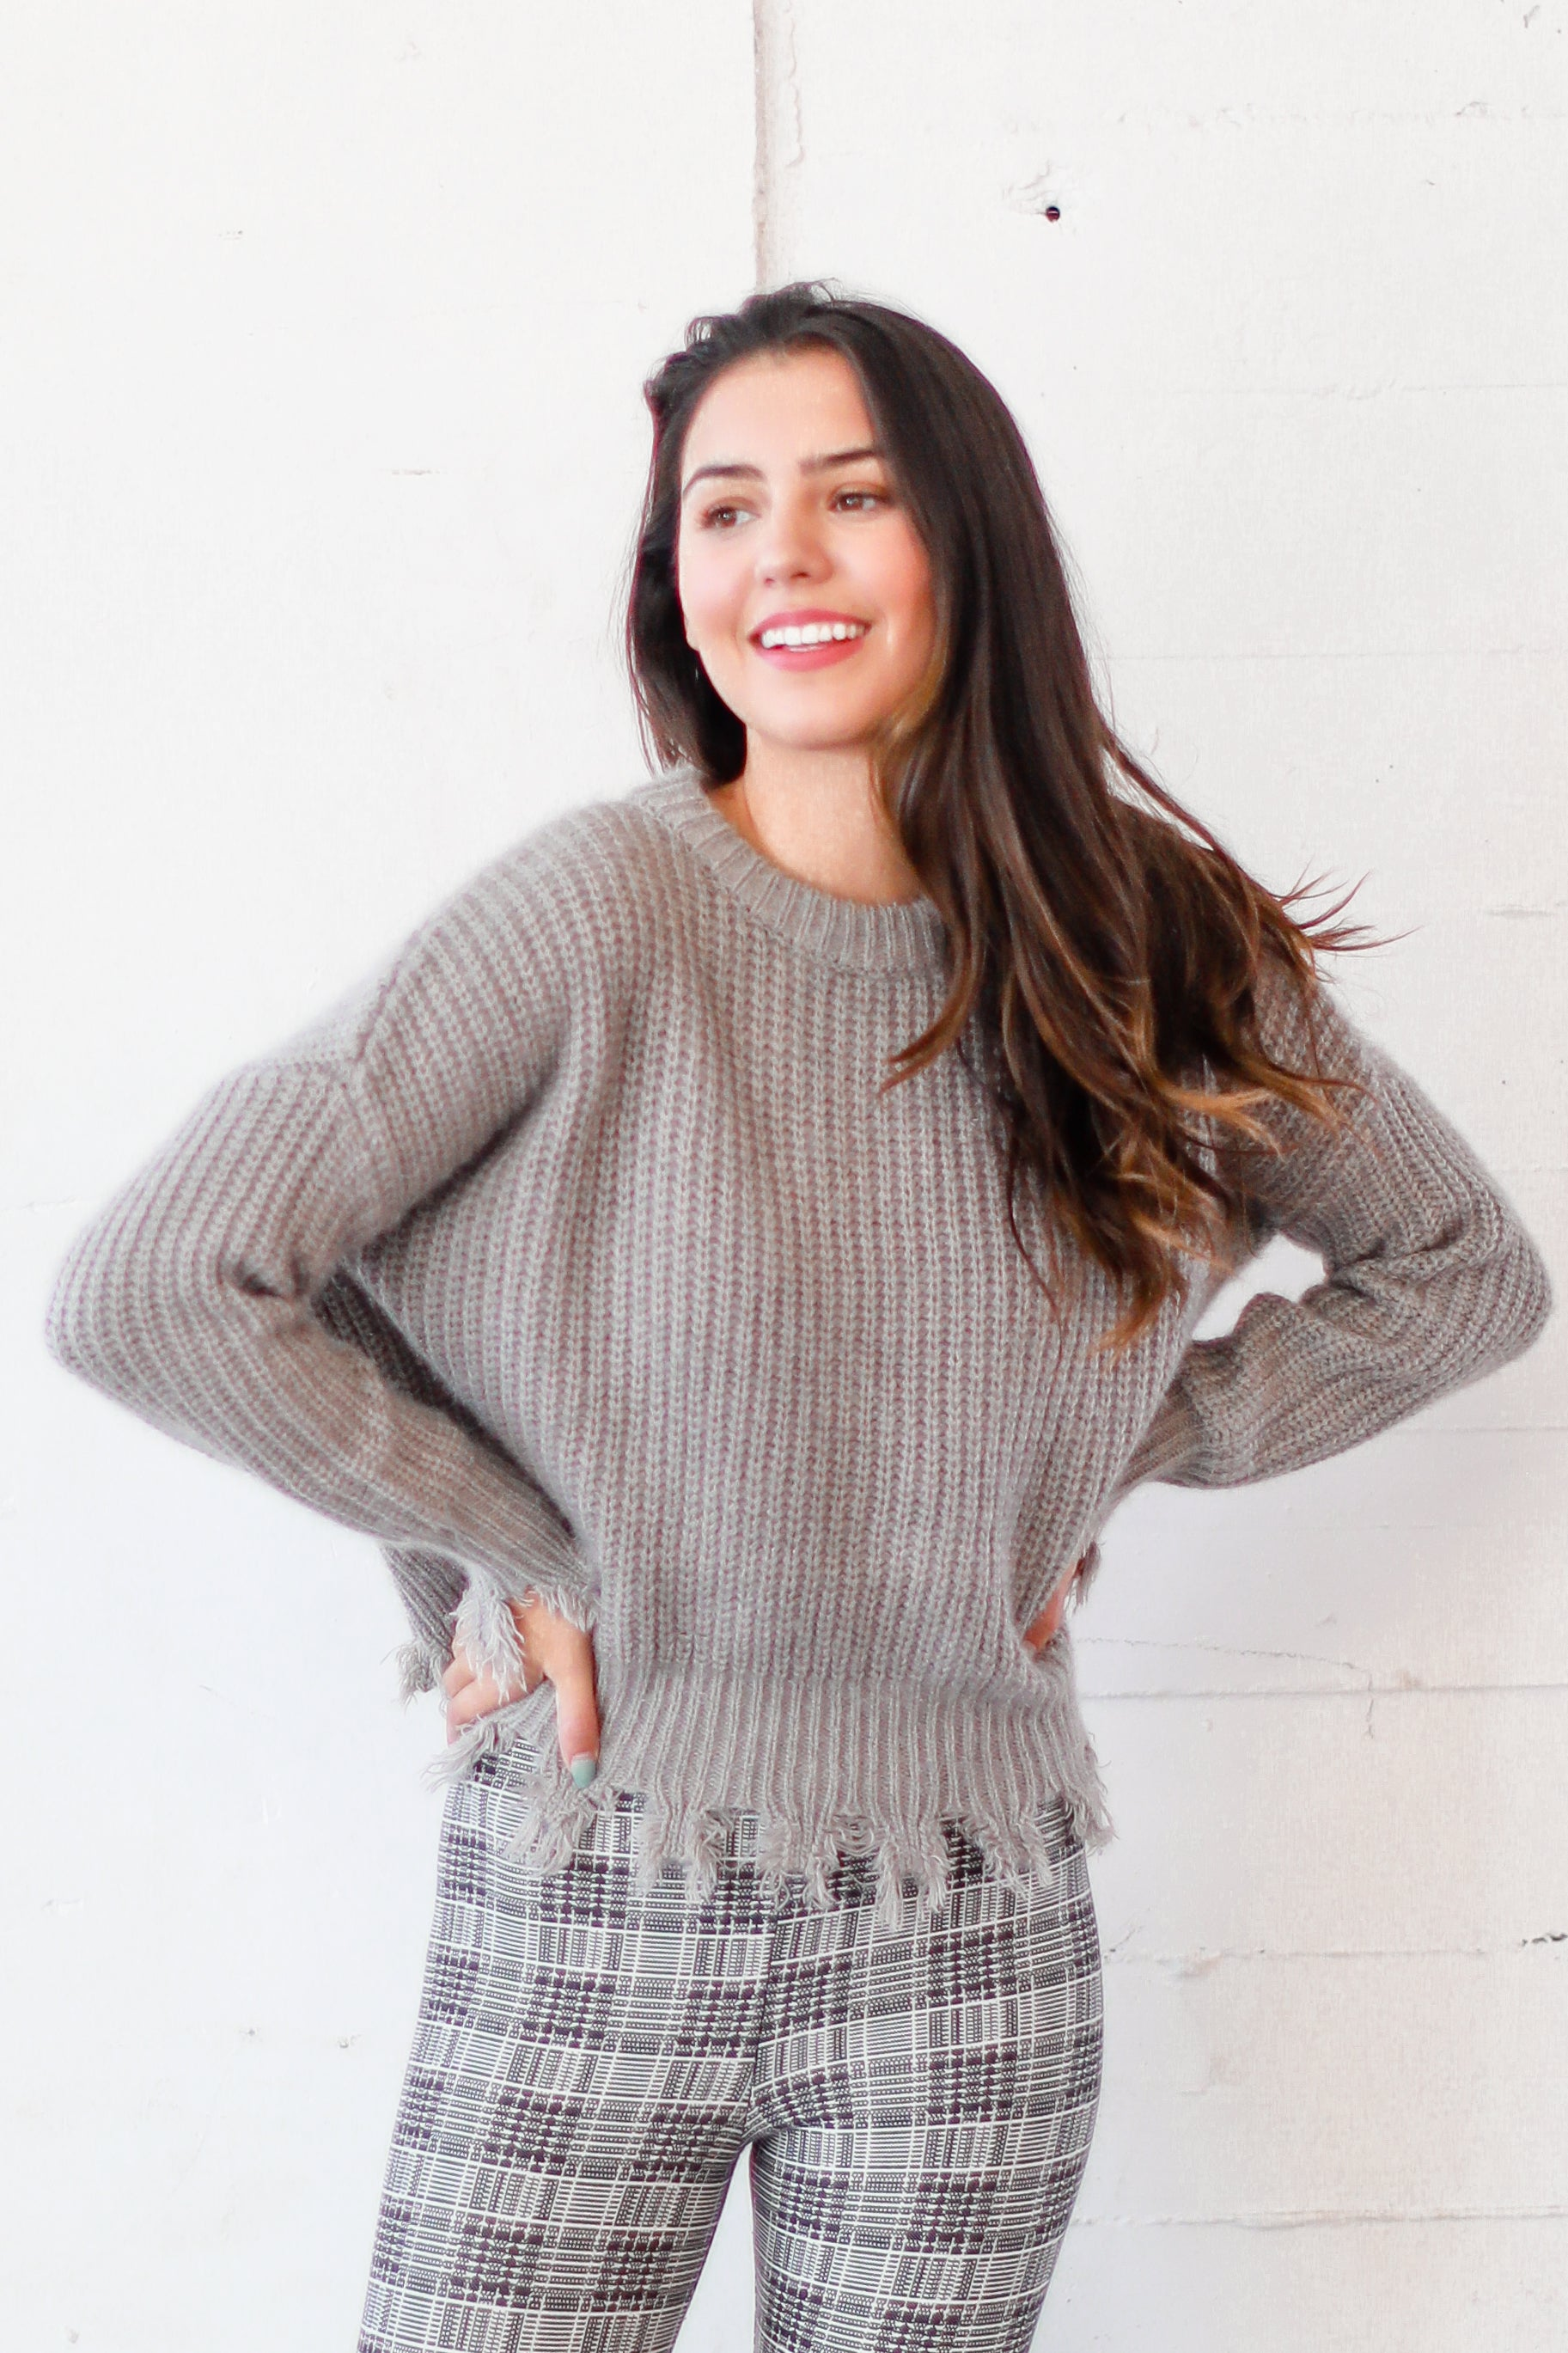 THERE'S TROUBLE GREY DISTRESSED SWEATER